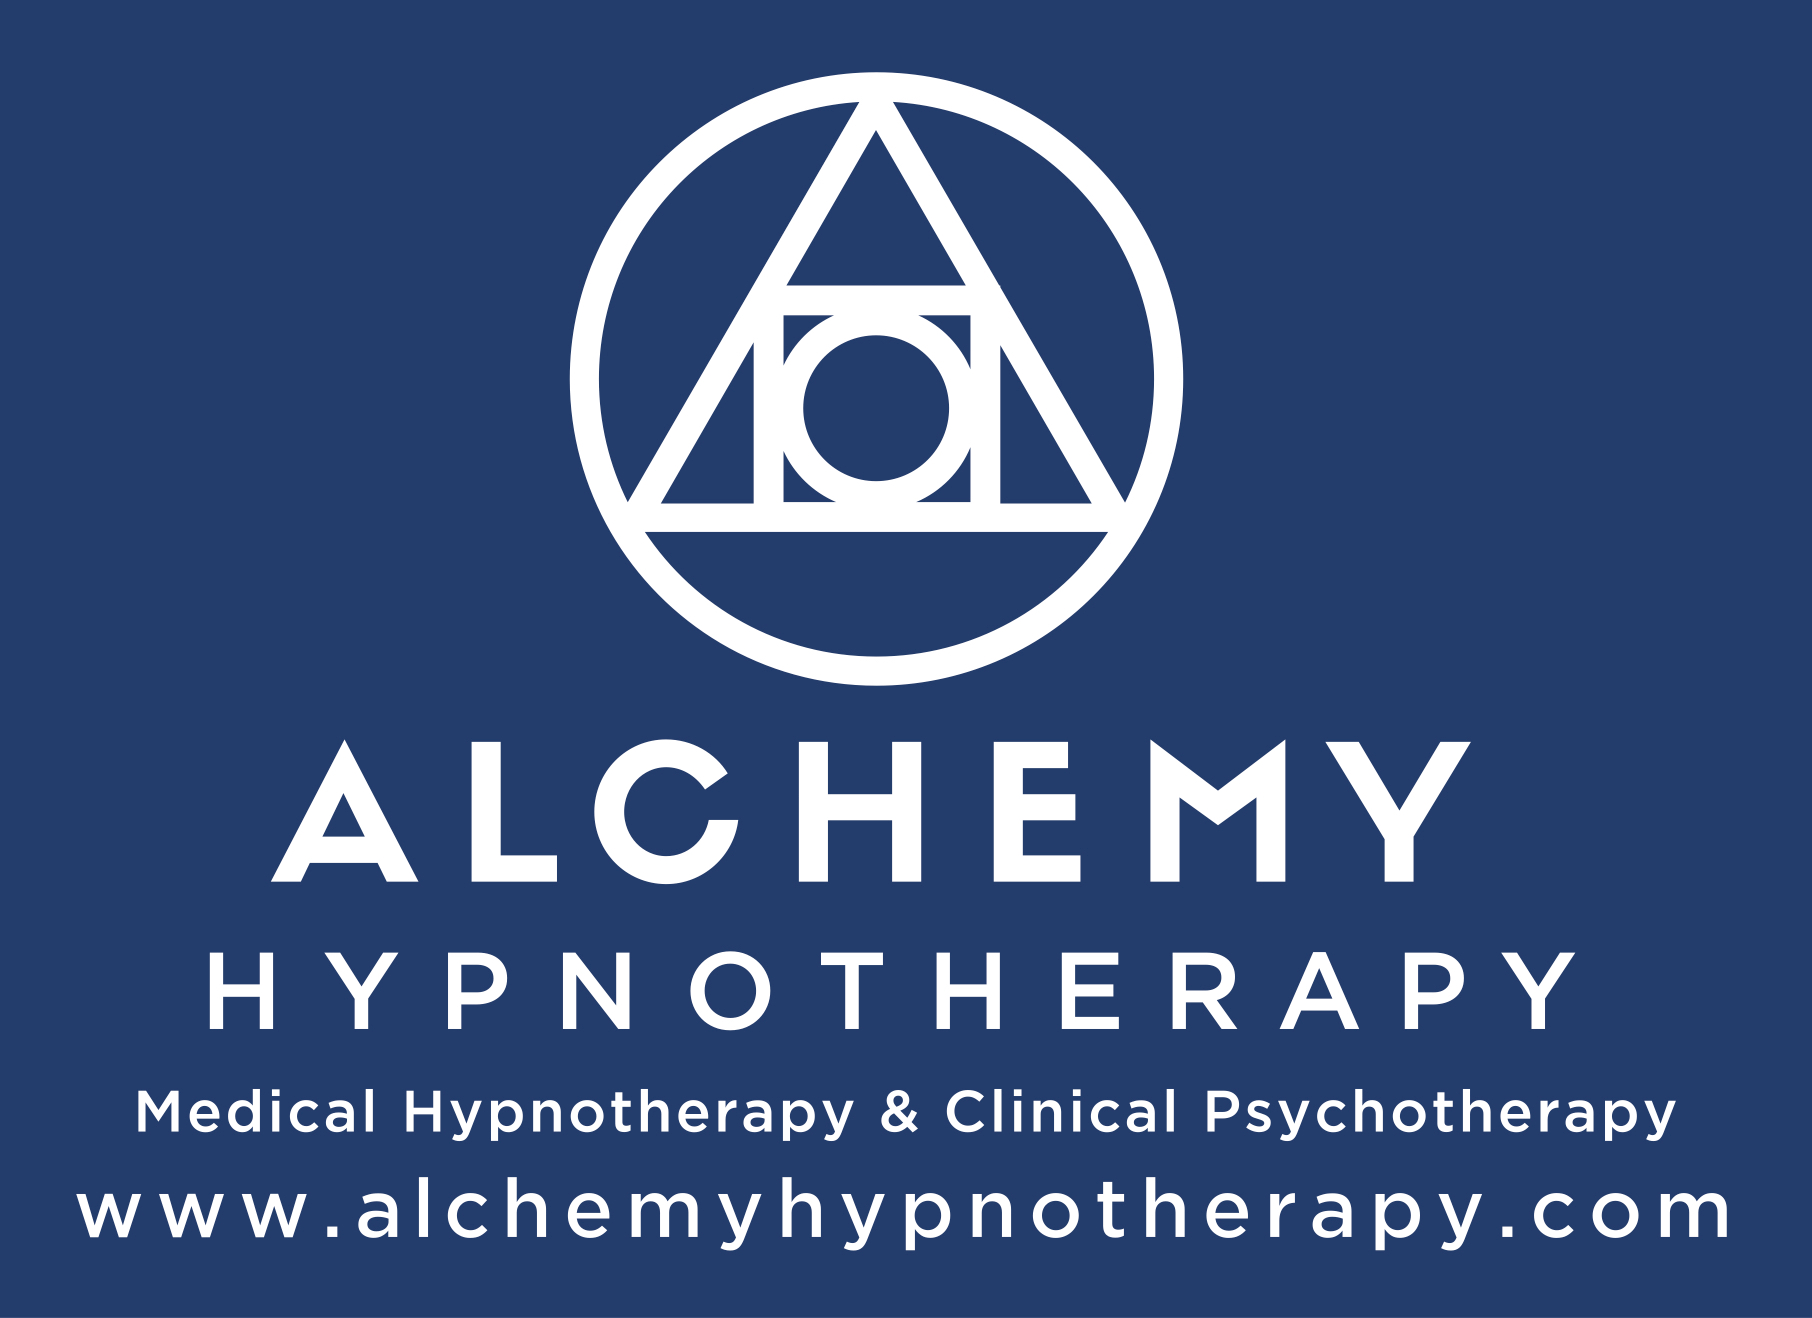 This is a picture of the Alchemy Hypnotherapy logo, white on blue background.